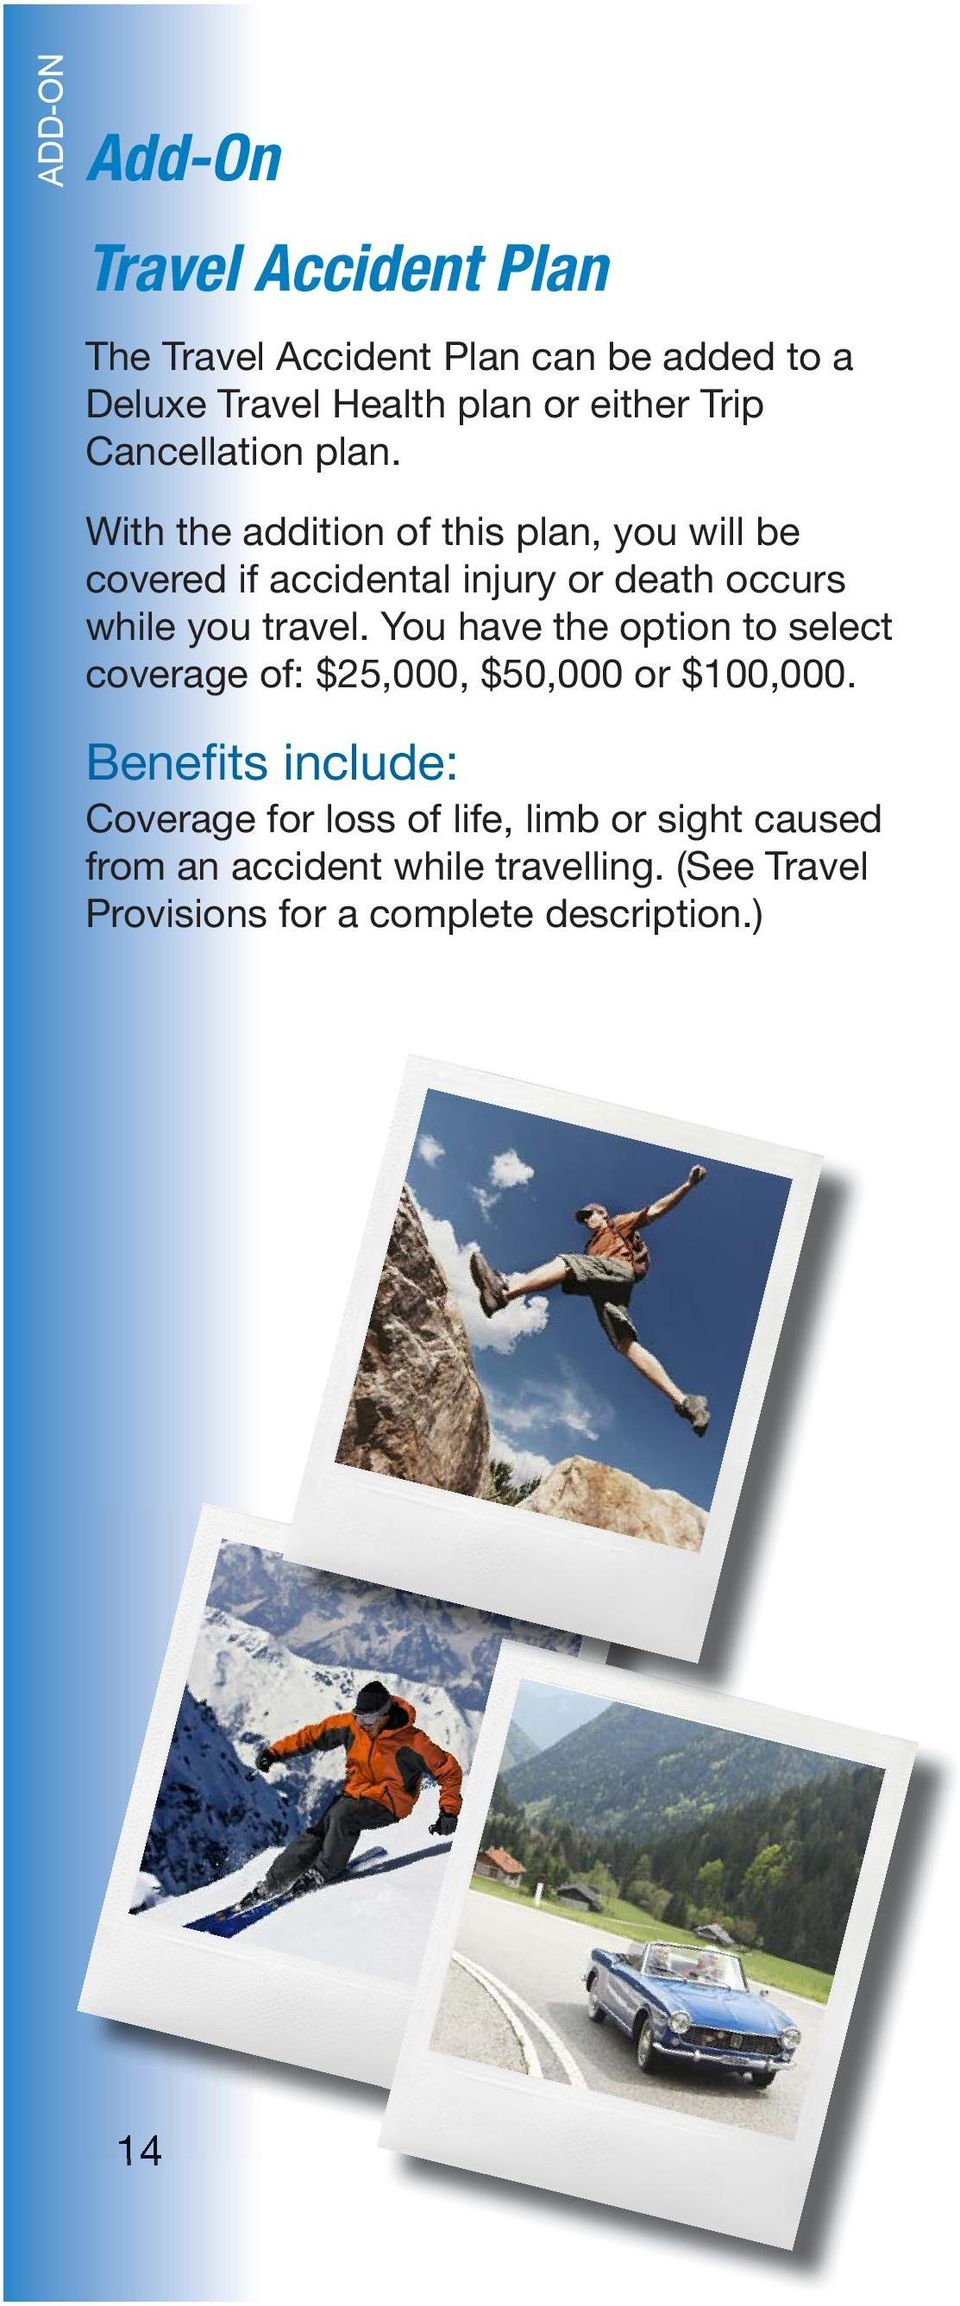 With the addition of this plan, you will be covered if accidental injury or death occurs while you travel.